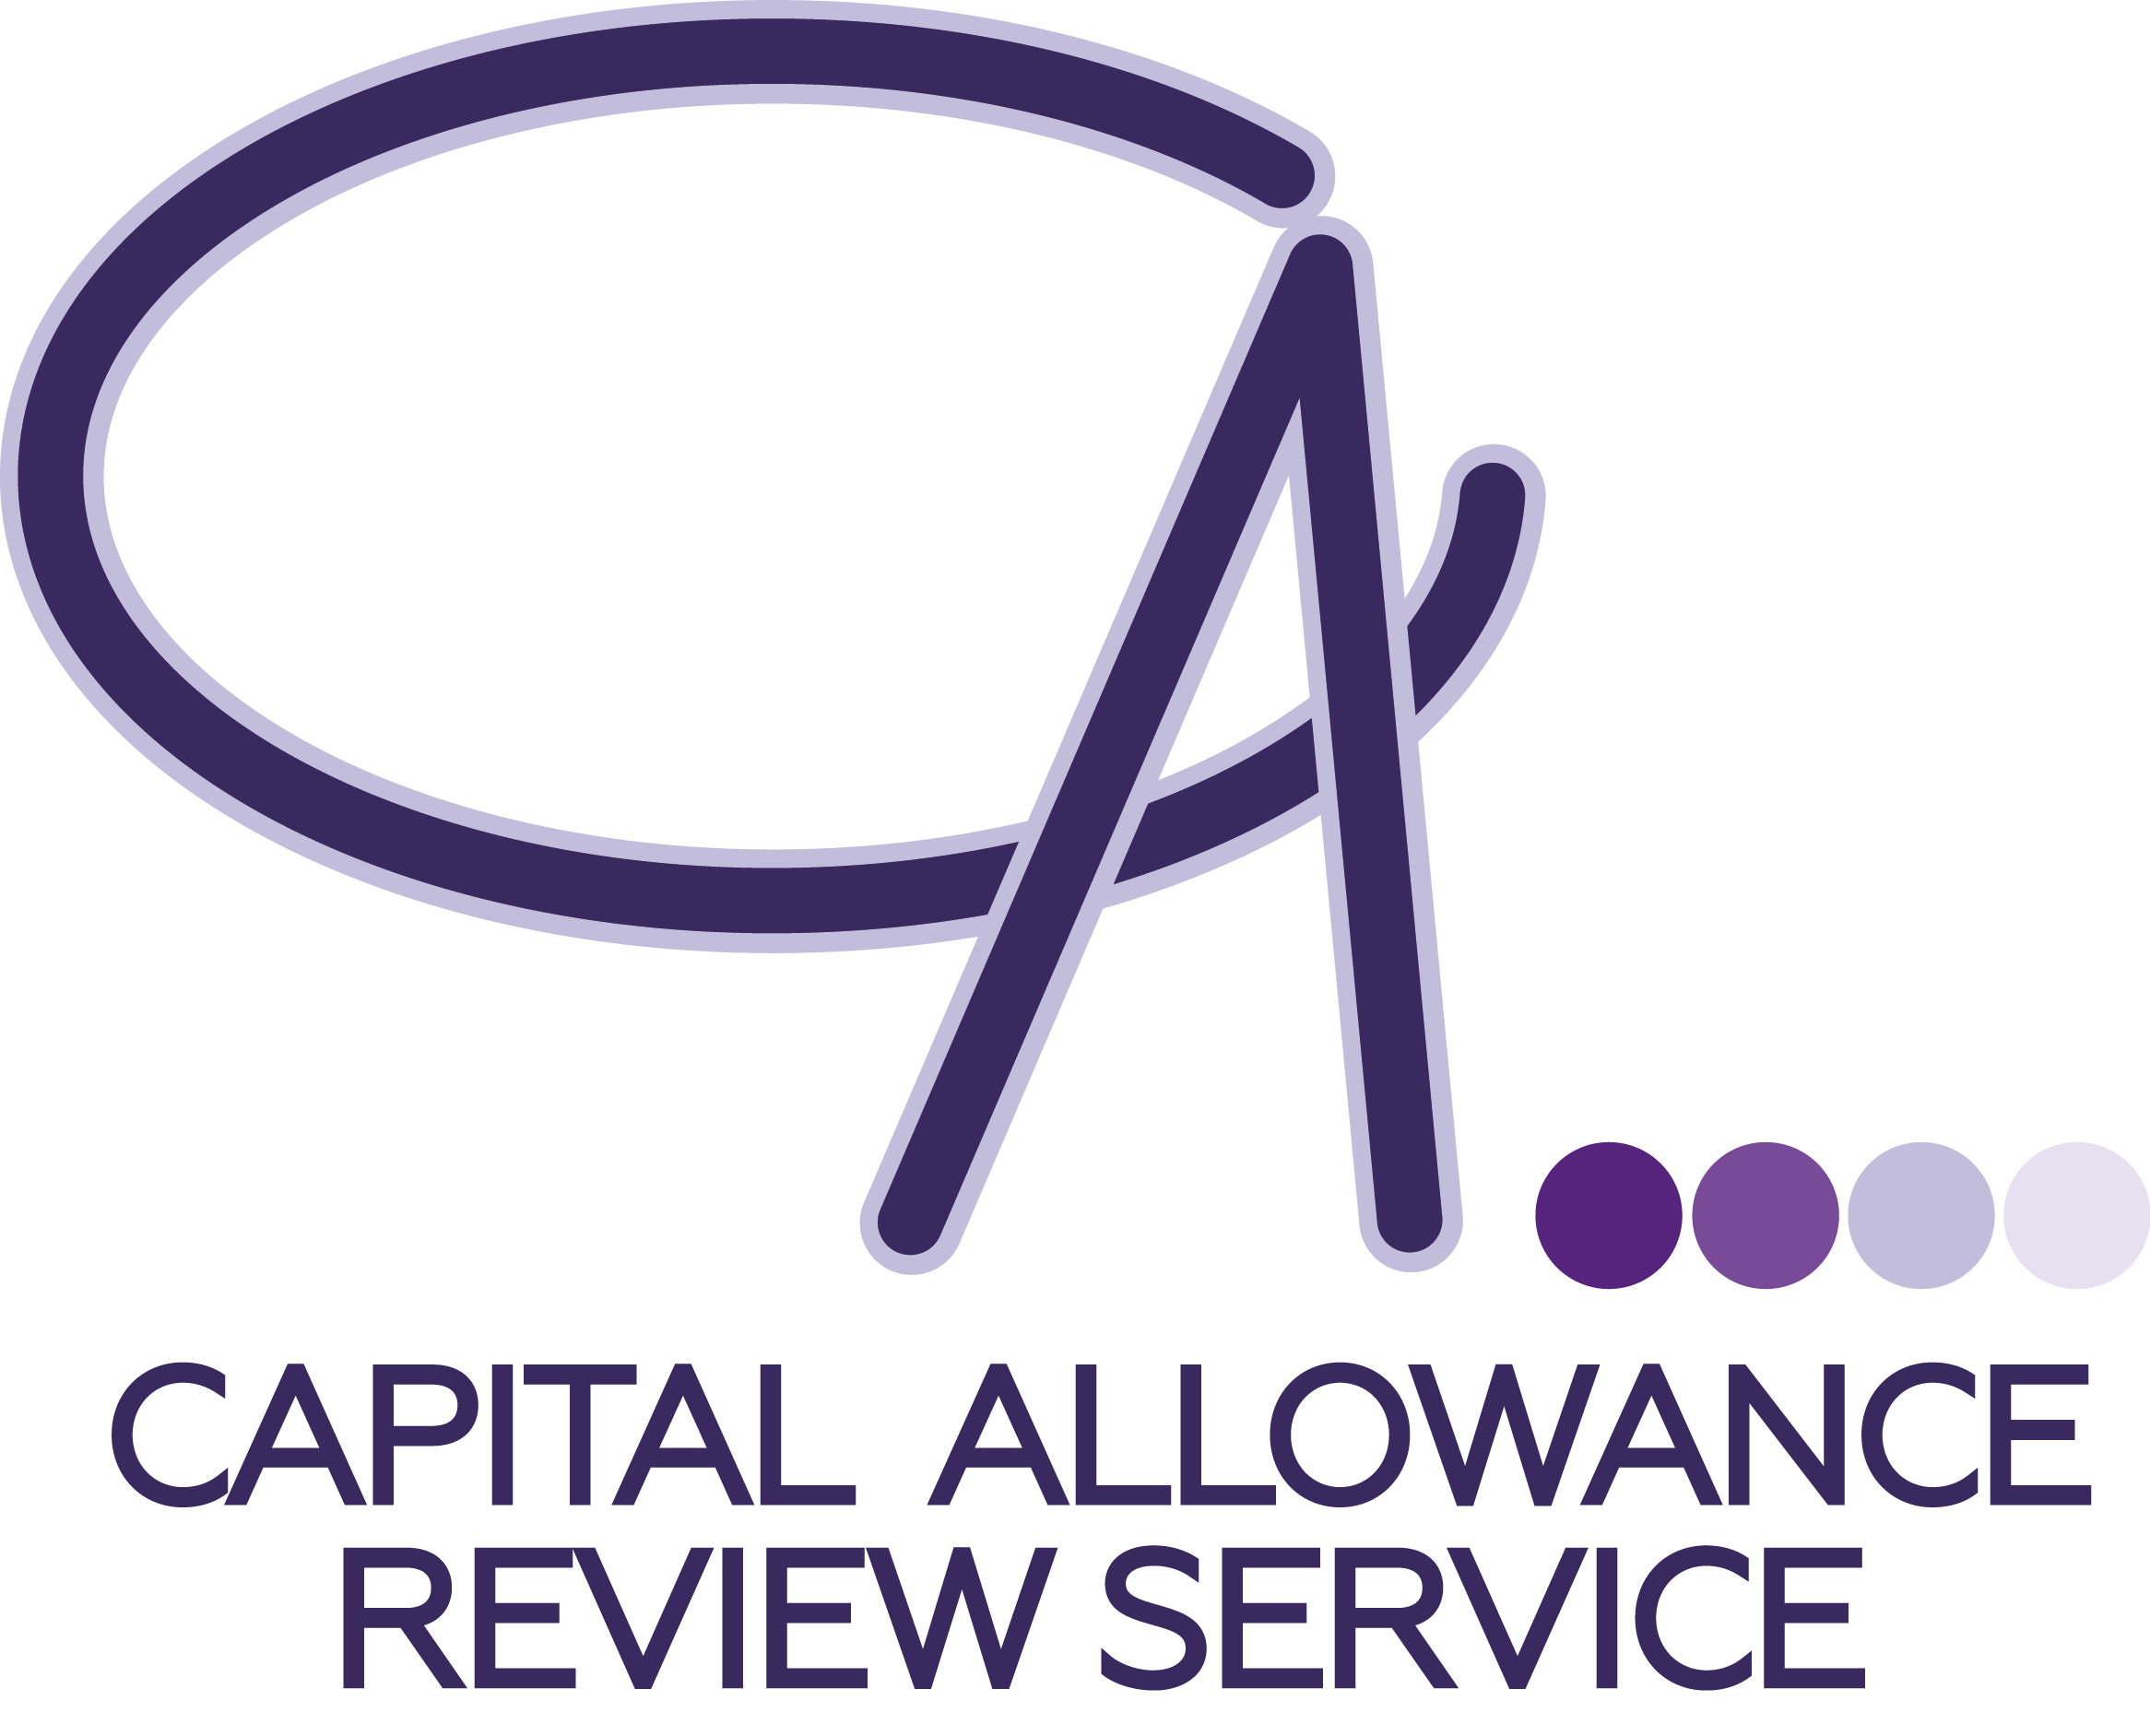 Capital Allowance Logo cropped REVISED